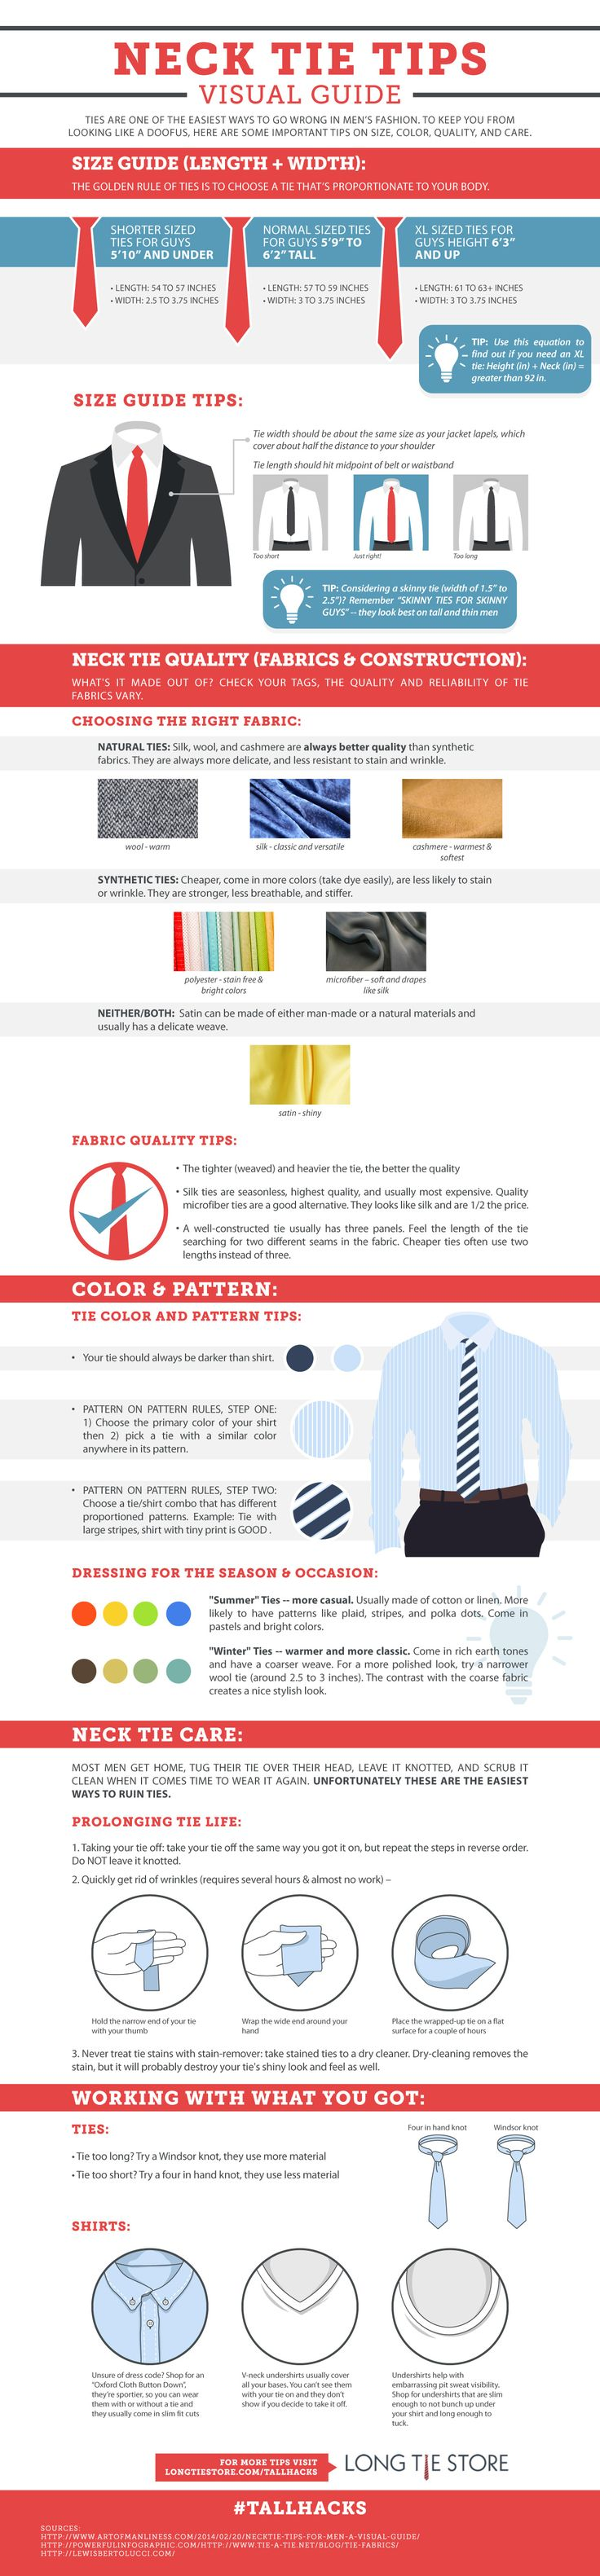 Neck ties are one of the easiest ways to go wrong in men's fashion | Advice on tie size, style, quality, and care in this Tie Tips Visual Guide Infographic